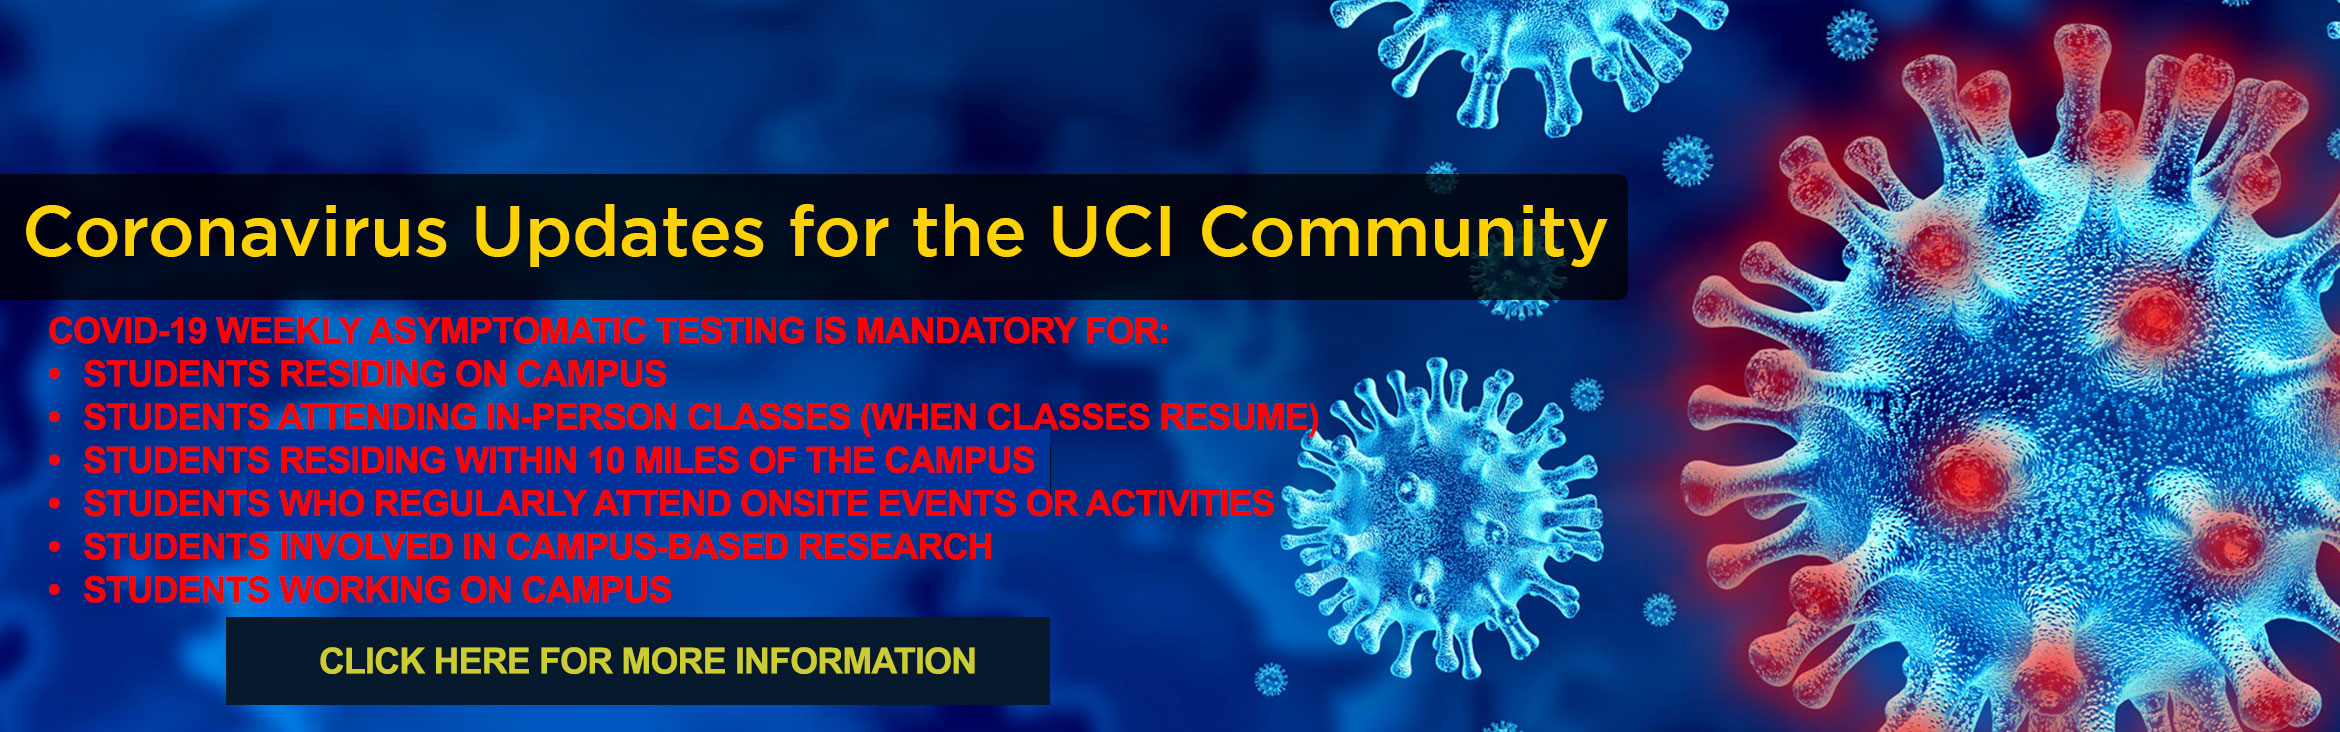 Coronavirus updates for the UCI Community IMPORTANT NOTICE: WEEKLY COVID-19 ASYMPTOMATIC TESTING IS NOW MANDATORY FOR ALL STUDENTS LIVING, LEARNING AND/OR  WORKING ON CAMPUS